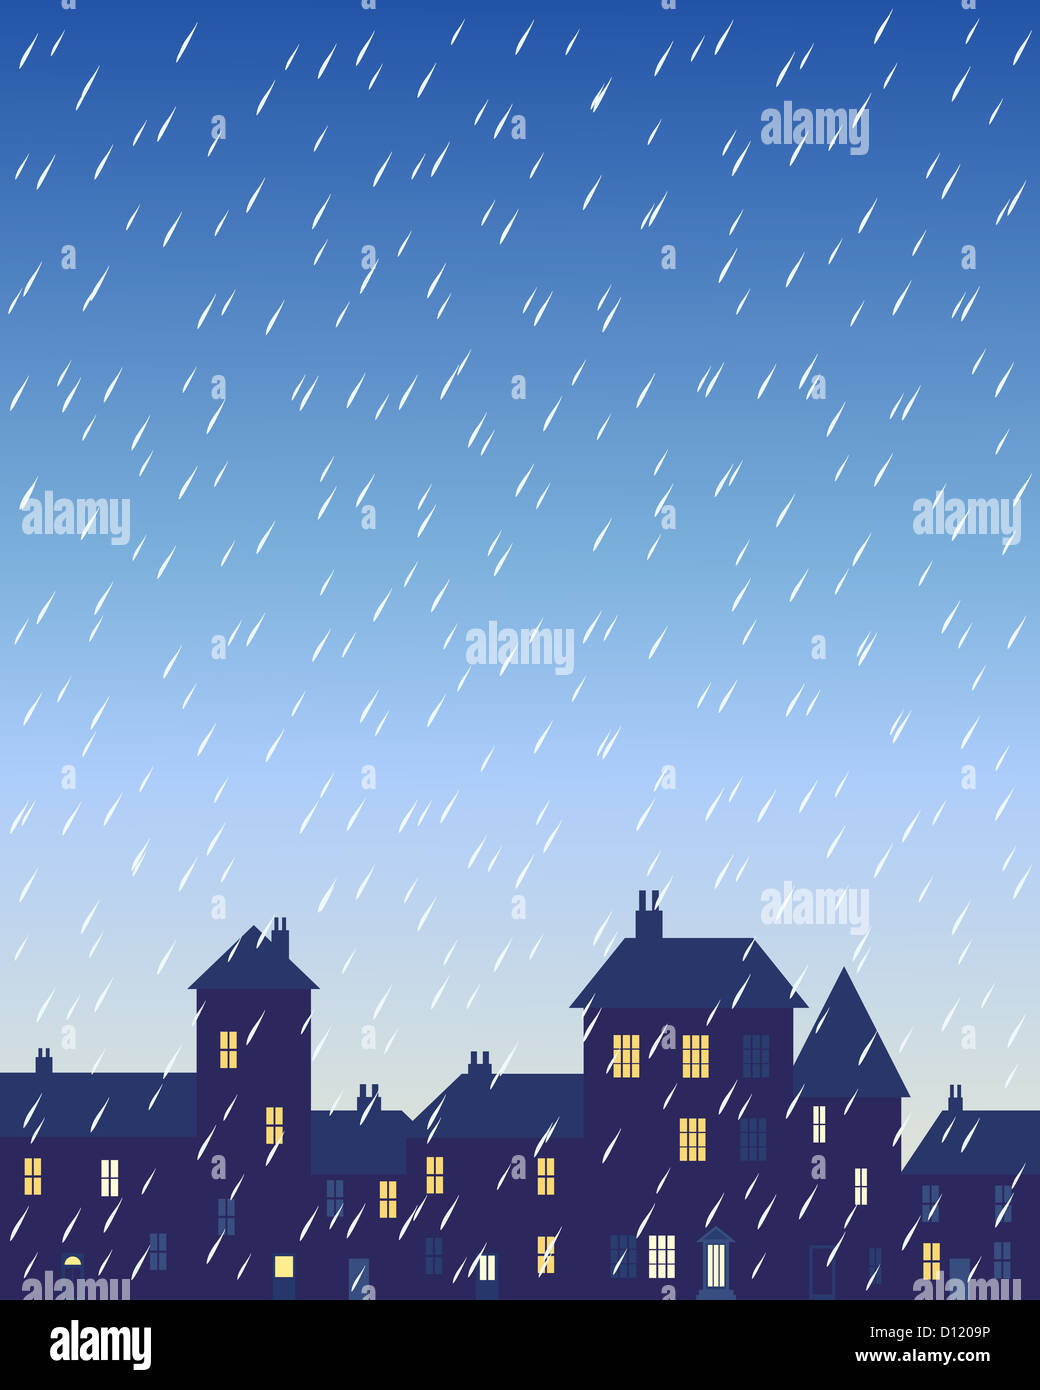 an illustration of a rainy day in a city with various shaped buildings and houses with lighted windows under a stormy - Stock Image